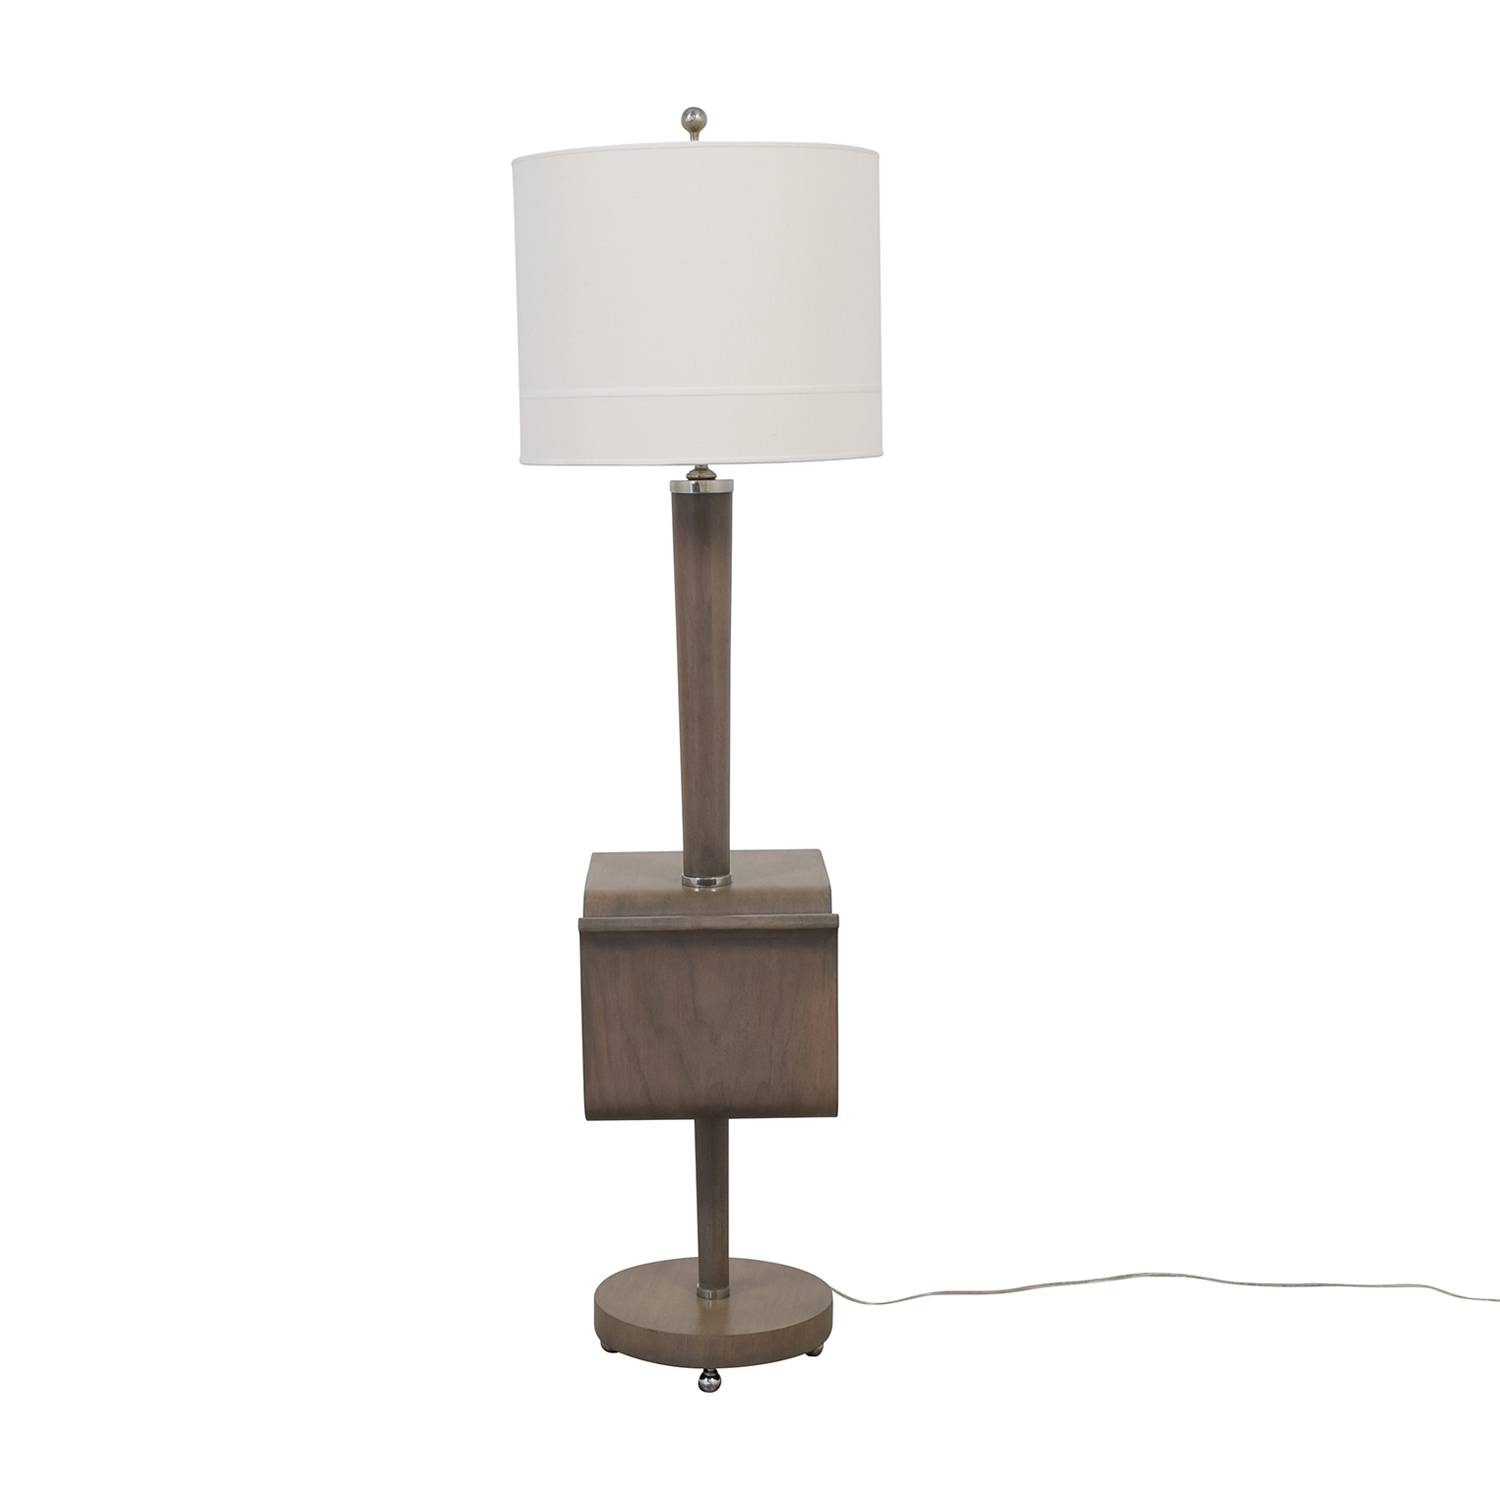 Stonebrook Interiors Stonebrook Interiors Floor Lamp with Magazine Holder nj